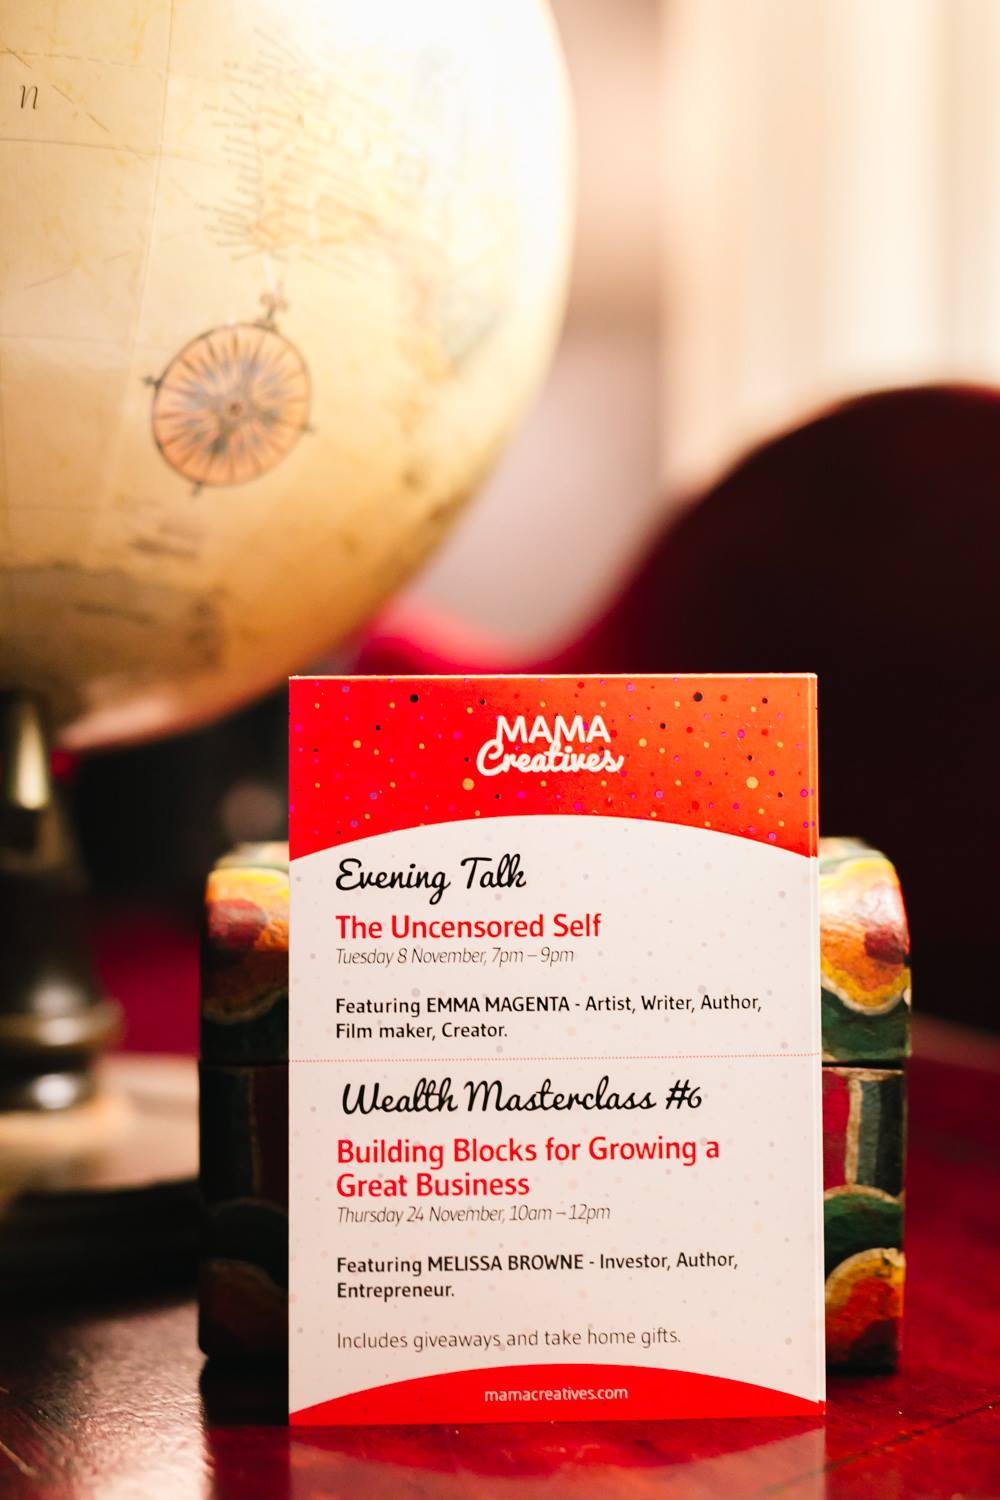 We have two amazing Mama Creatives events coming up in November. An Evening Talk, 'The Uncensored Self' featuring the fabulous artist, writer and filmaker Emma Magenta PLUS our final 'Wealth' Masterclass #6: 'BUILDING BLOCKS FOR GROWING A GREAT BUSINESS' FEATURING: Melissa Browne, Investor, Author, Entrepreneur.